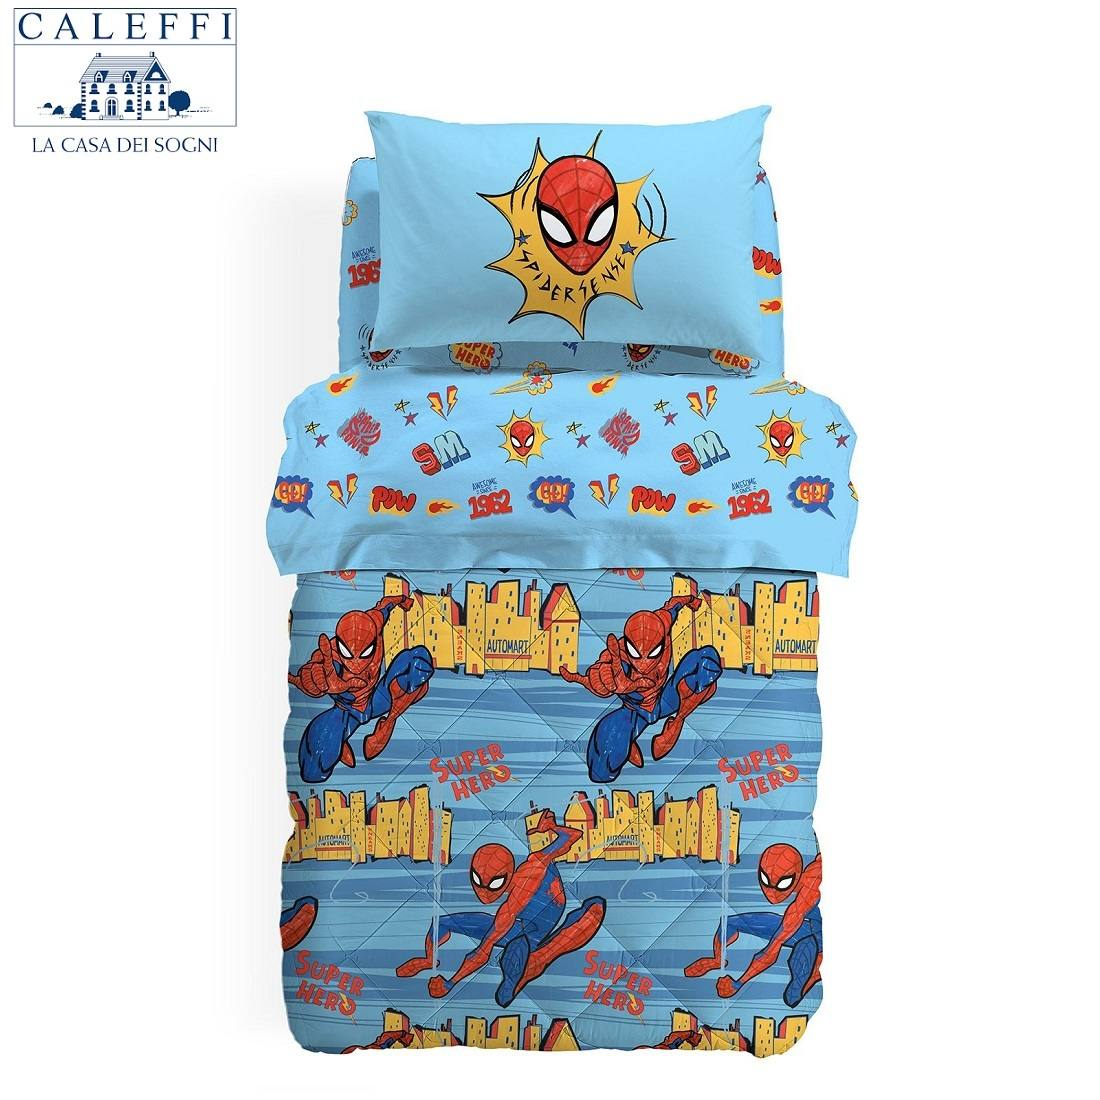 Trapunta Spiderman Caleffi Spiderman New York Singola Esterno Cotone